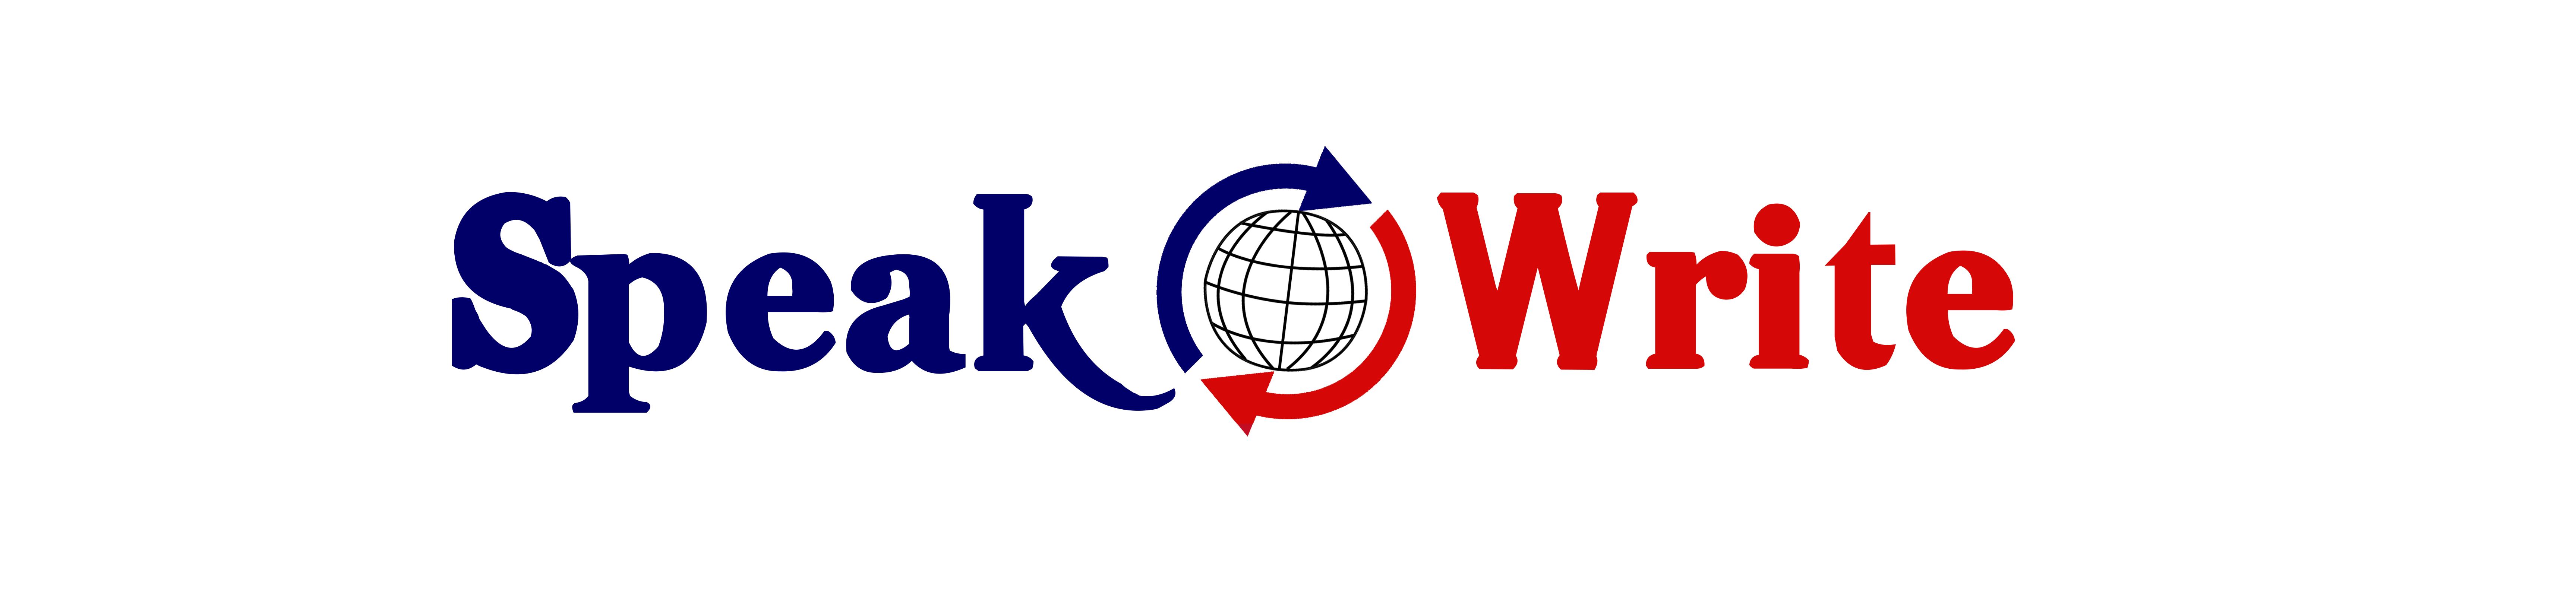 SpeakWrite International English Institute